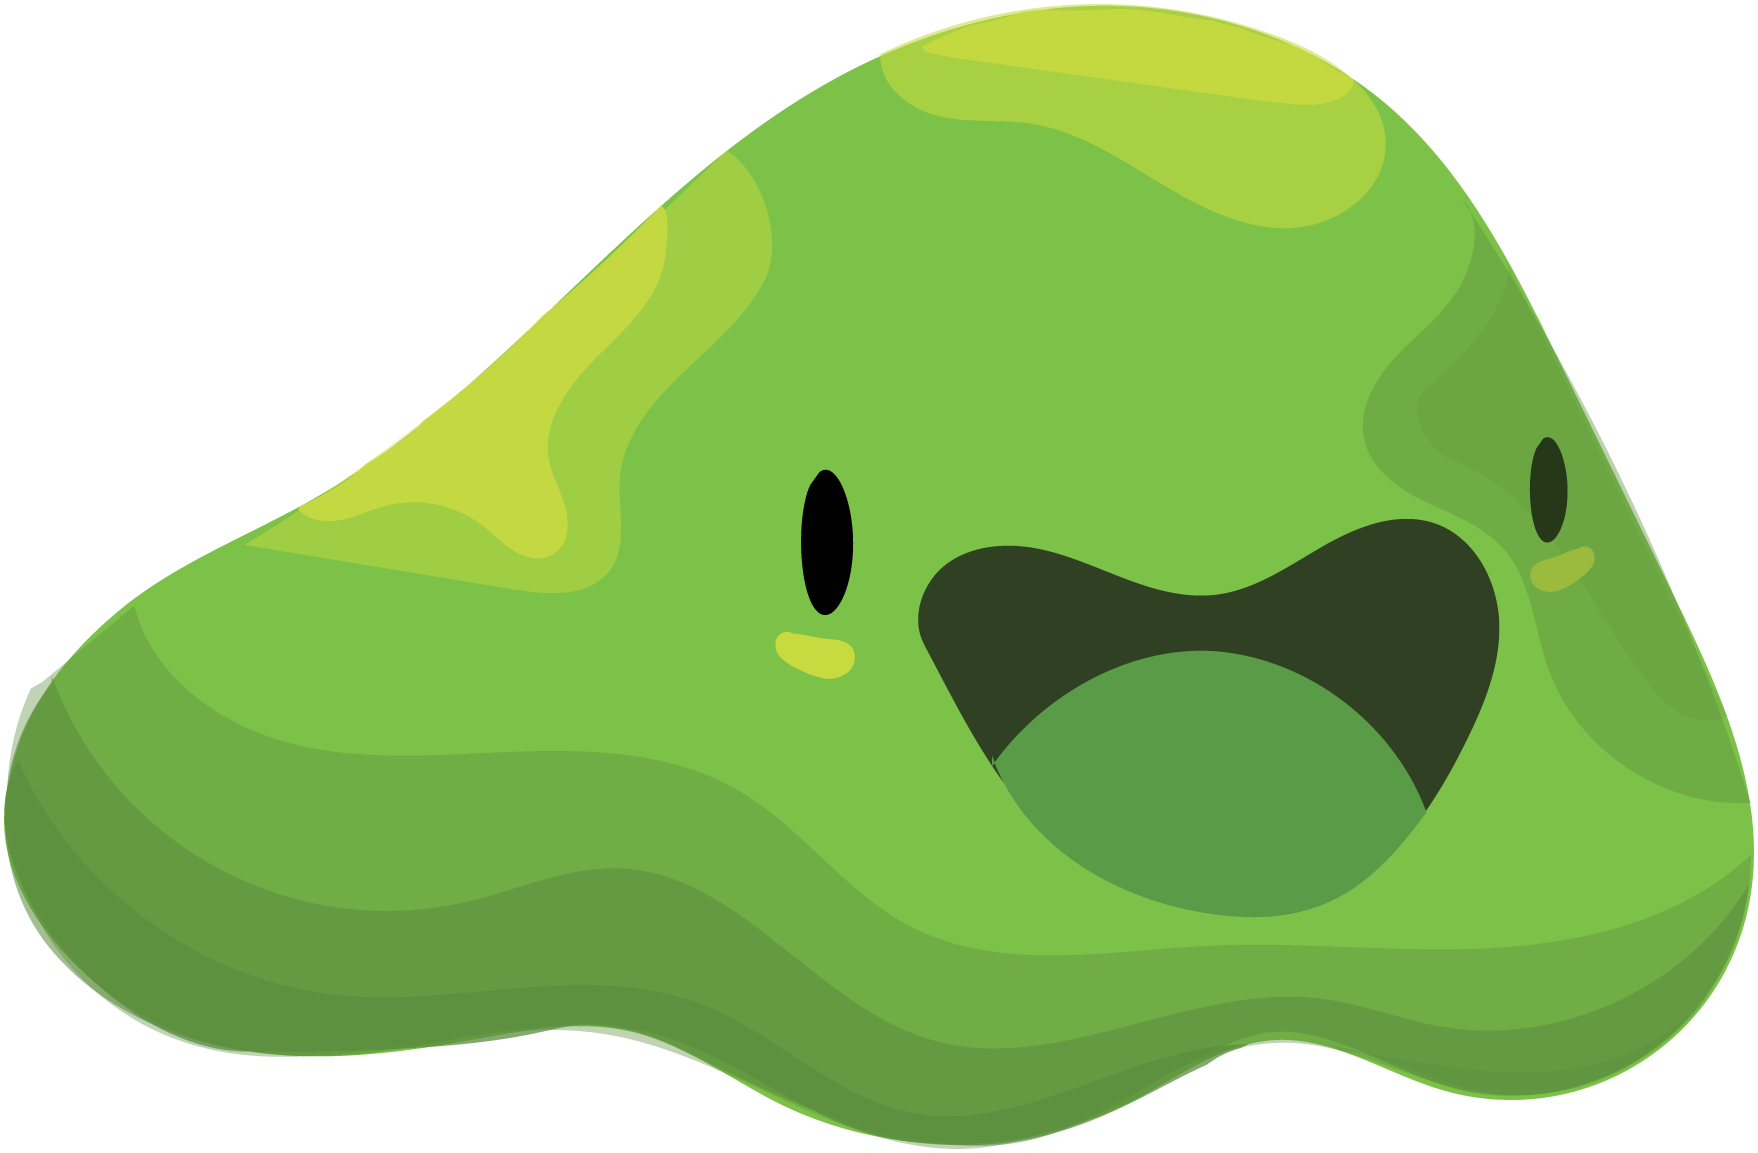 Slime swirl. Clipart transparent free for